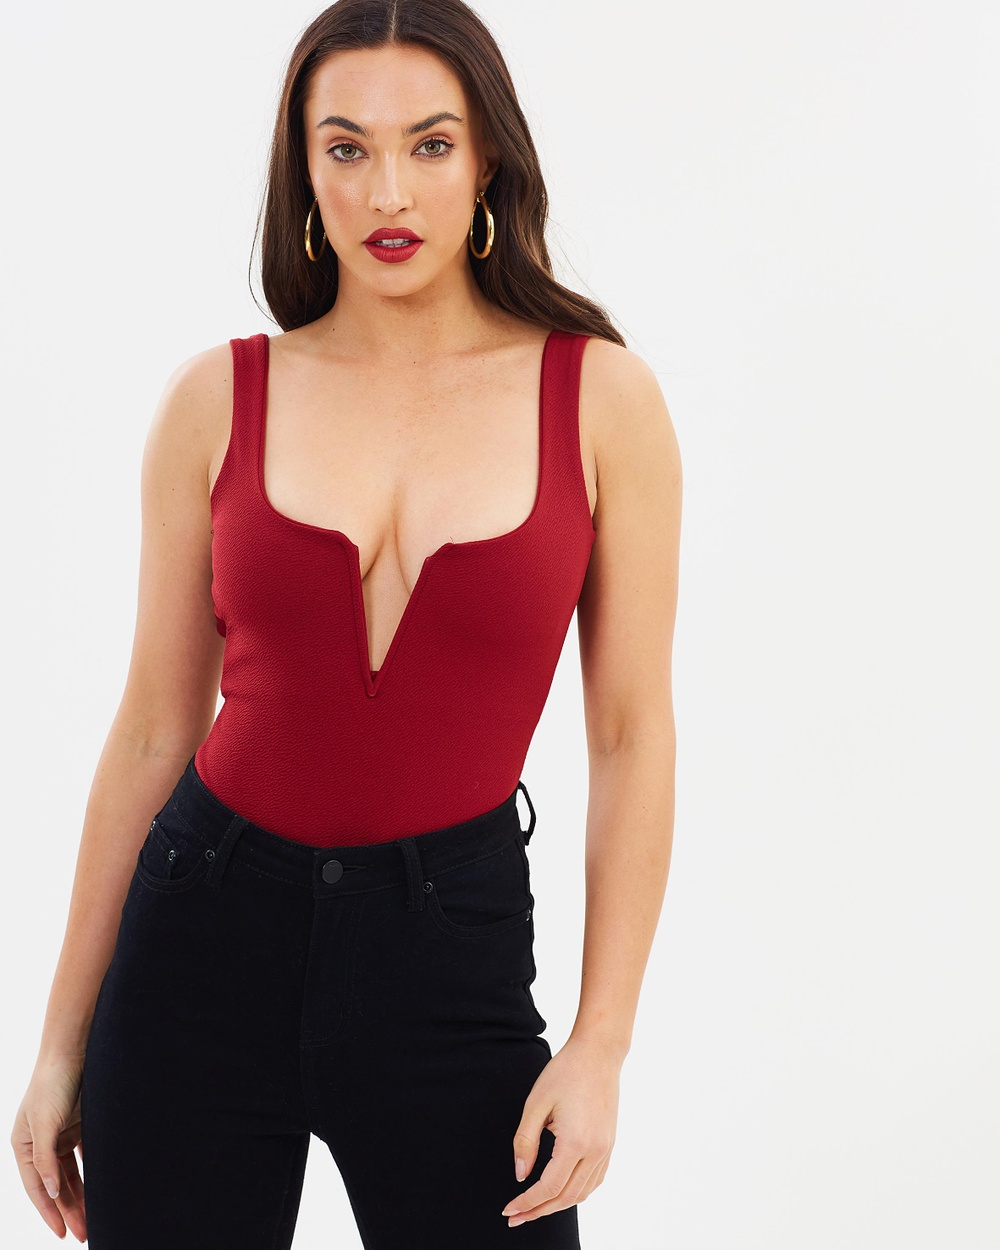 Missguided Notch Crepe Bodysuit Tops Wine Notch Crepe Bodysuit